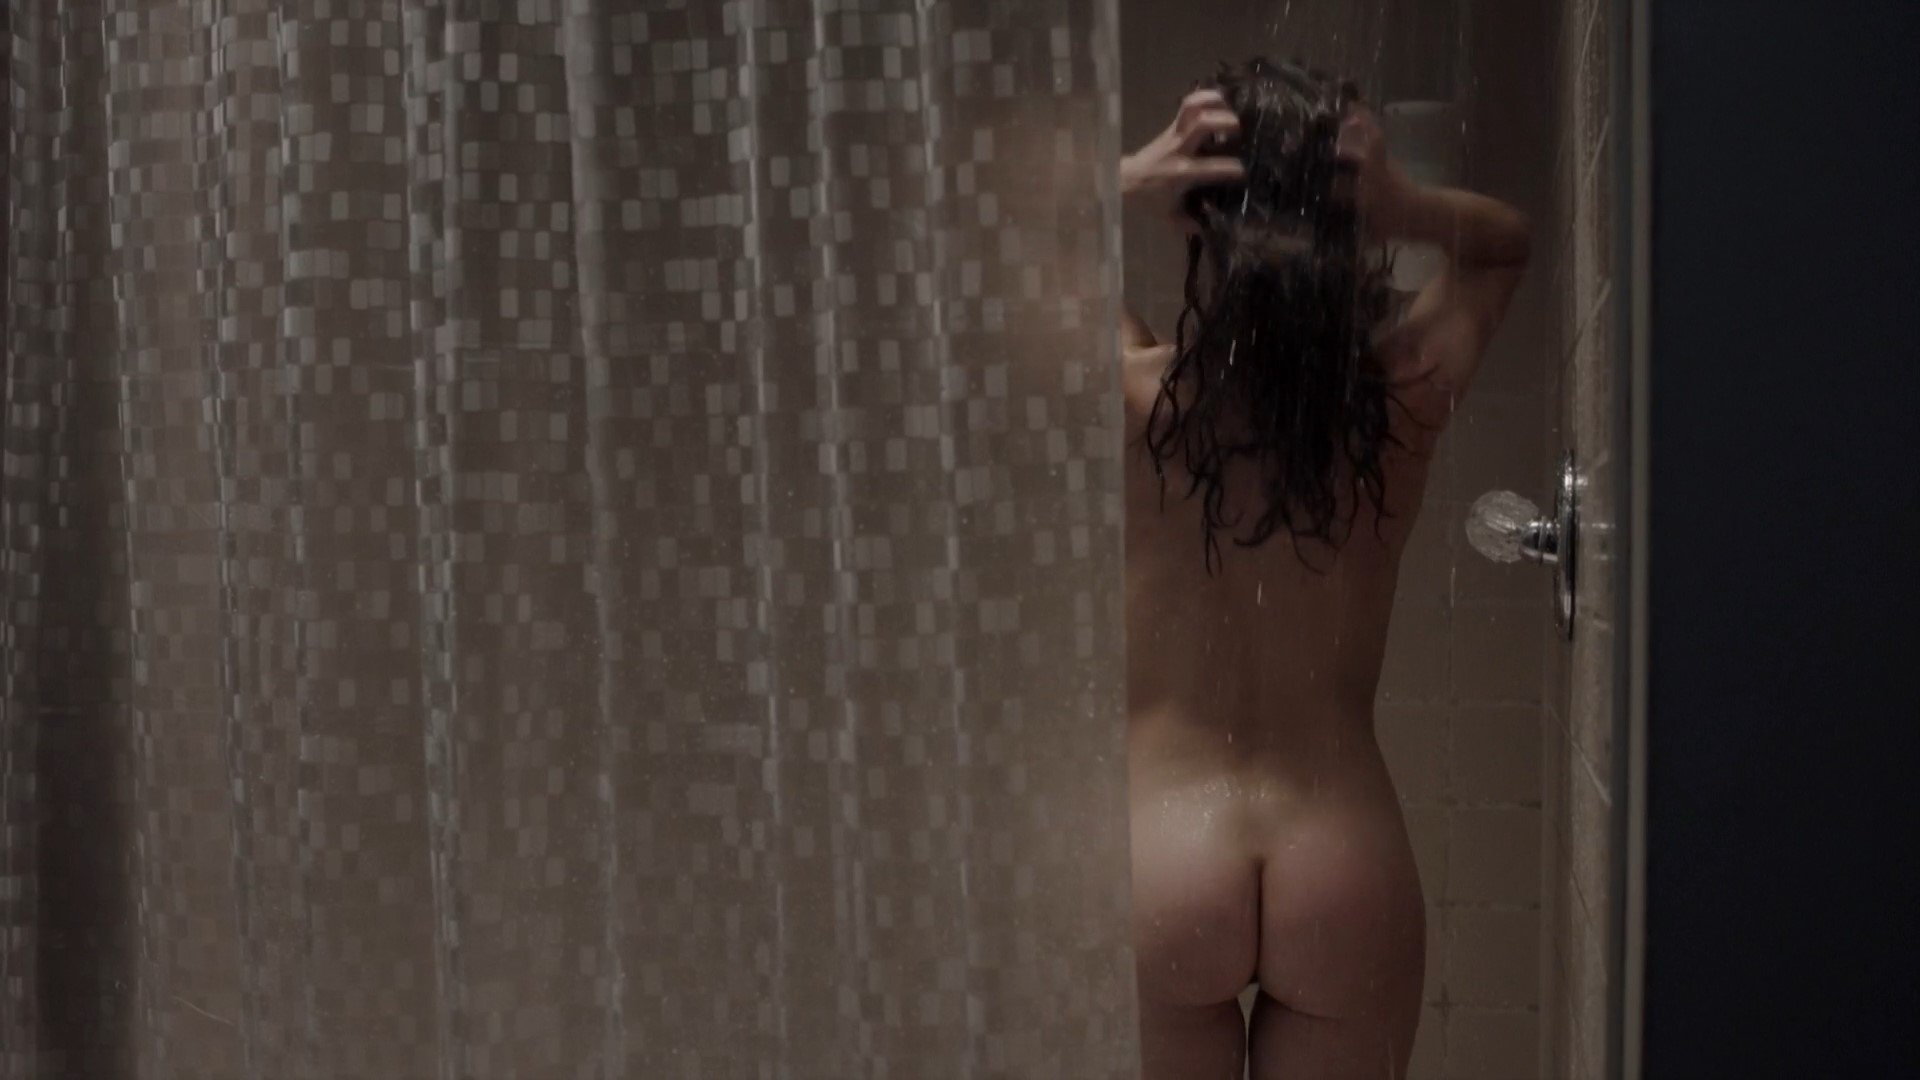 keri russell nude photos and videos | #thefappening